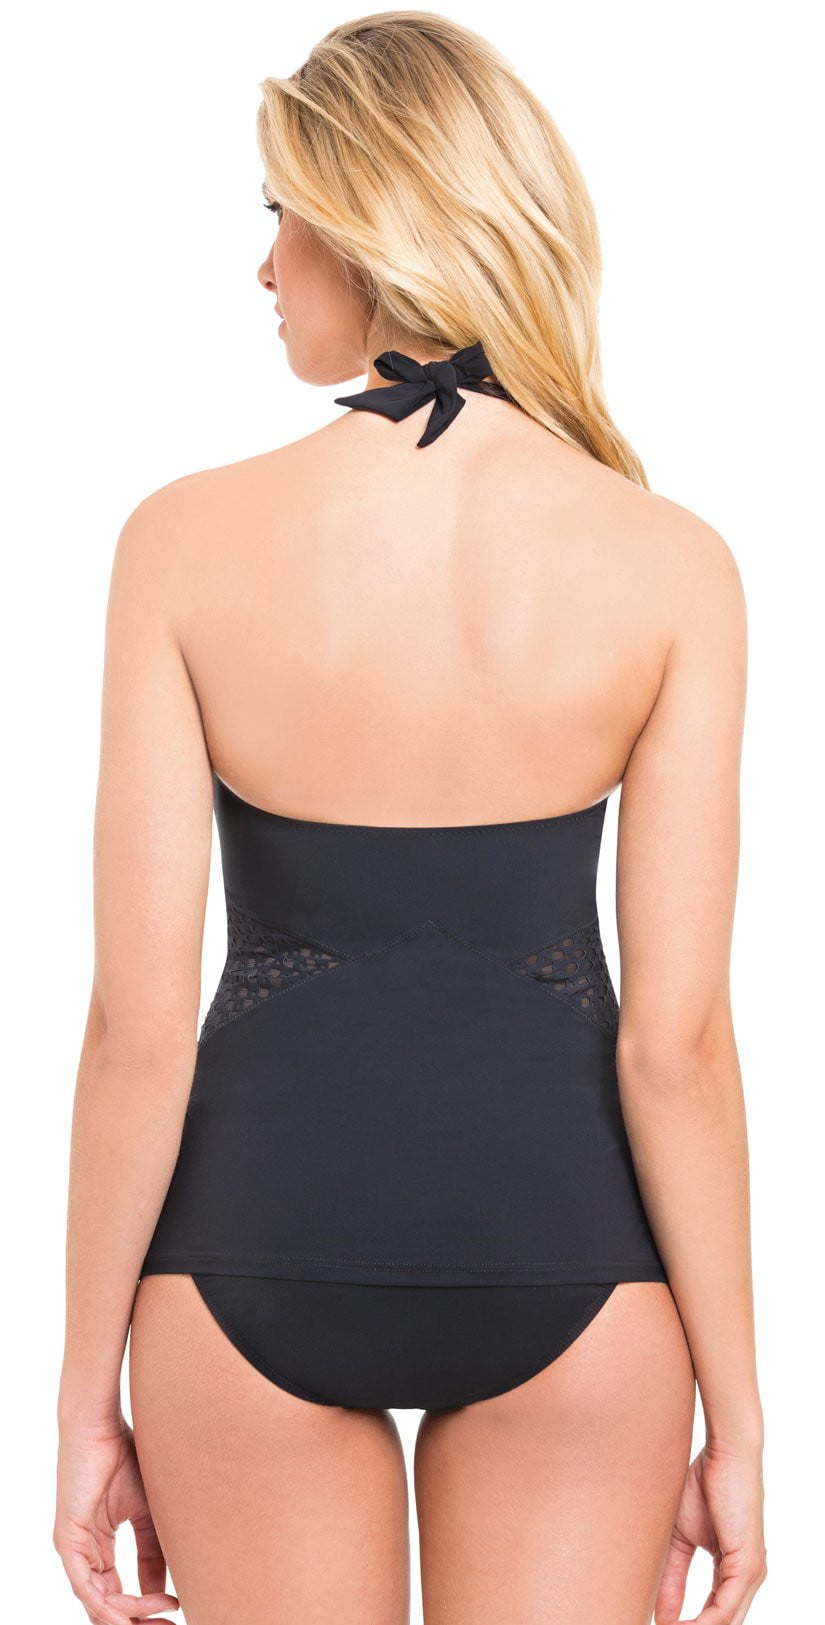 Profile by Gottex Monte Carlo Zip Up Tankini Top in Black E765-1B30-001: